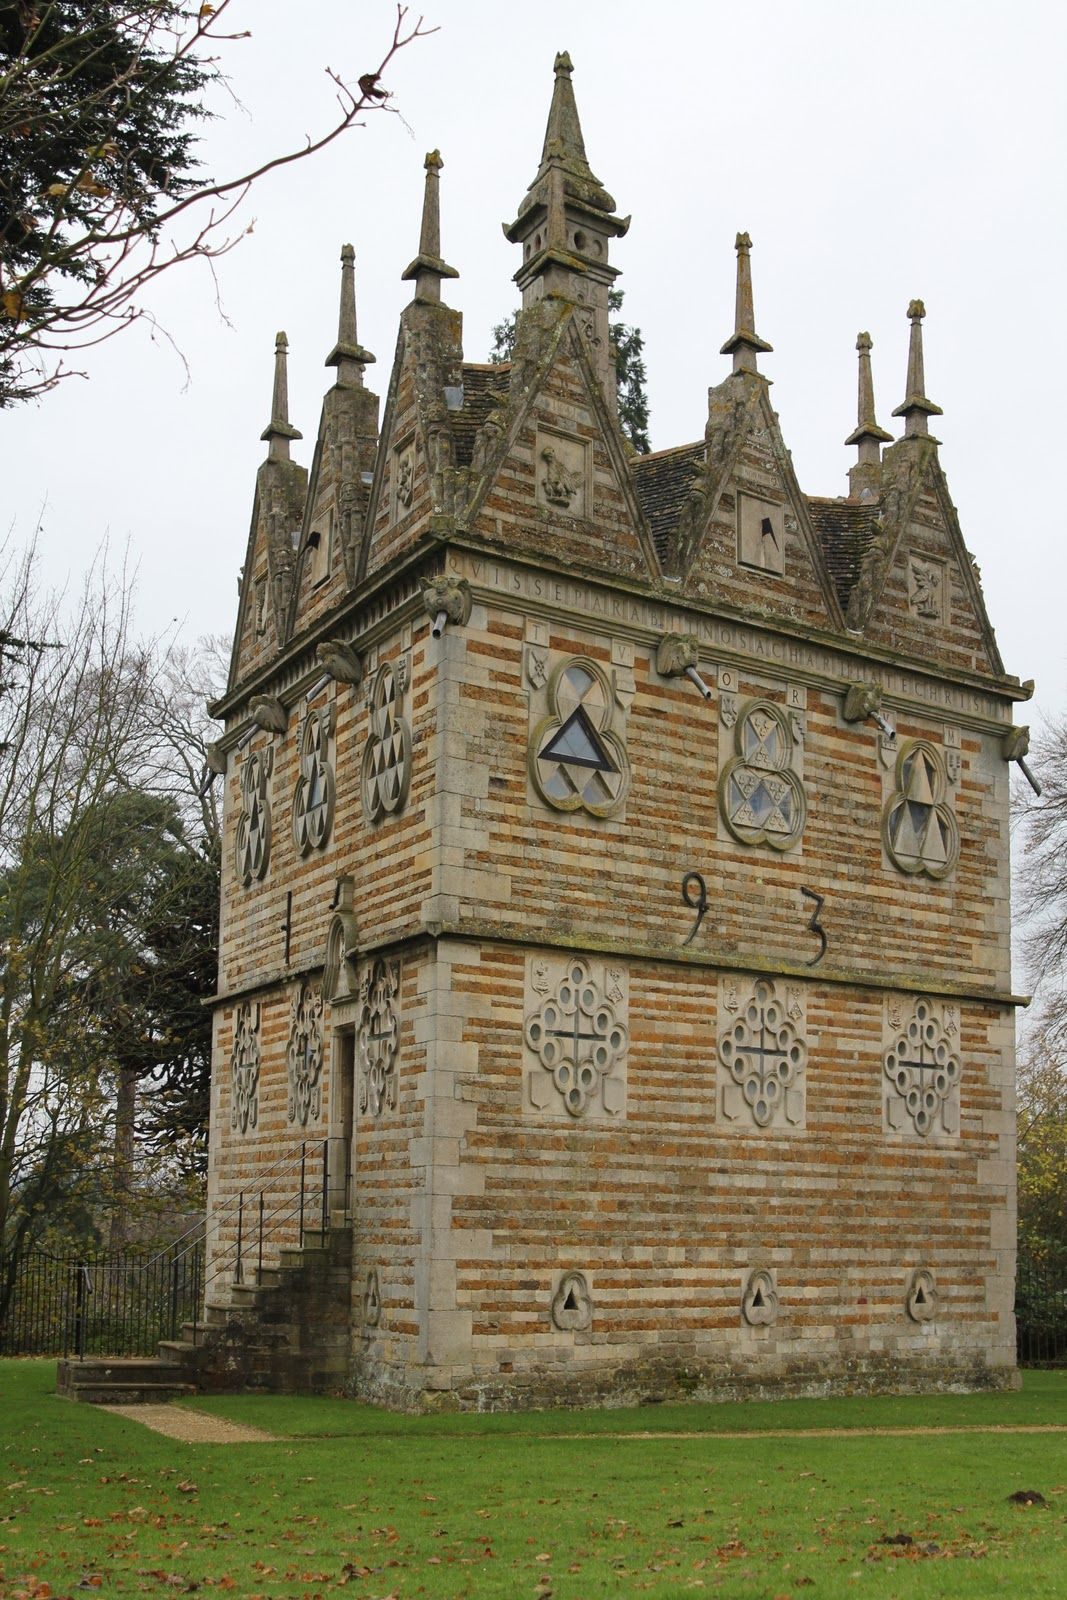 The Triangular Lodge is a folly, designed and constructed between 1593 and 1597 by Sir Thomas Tresham near Rushton, Northamptonshire, England.